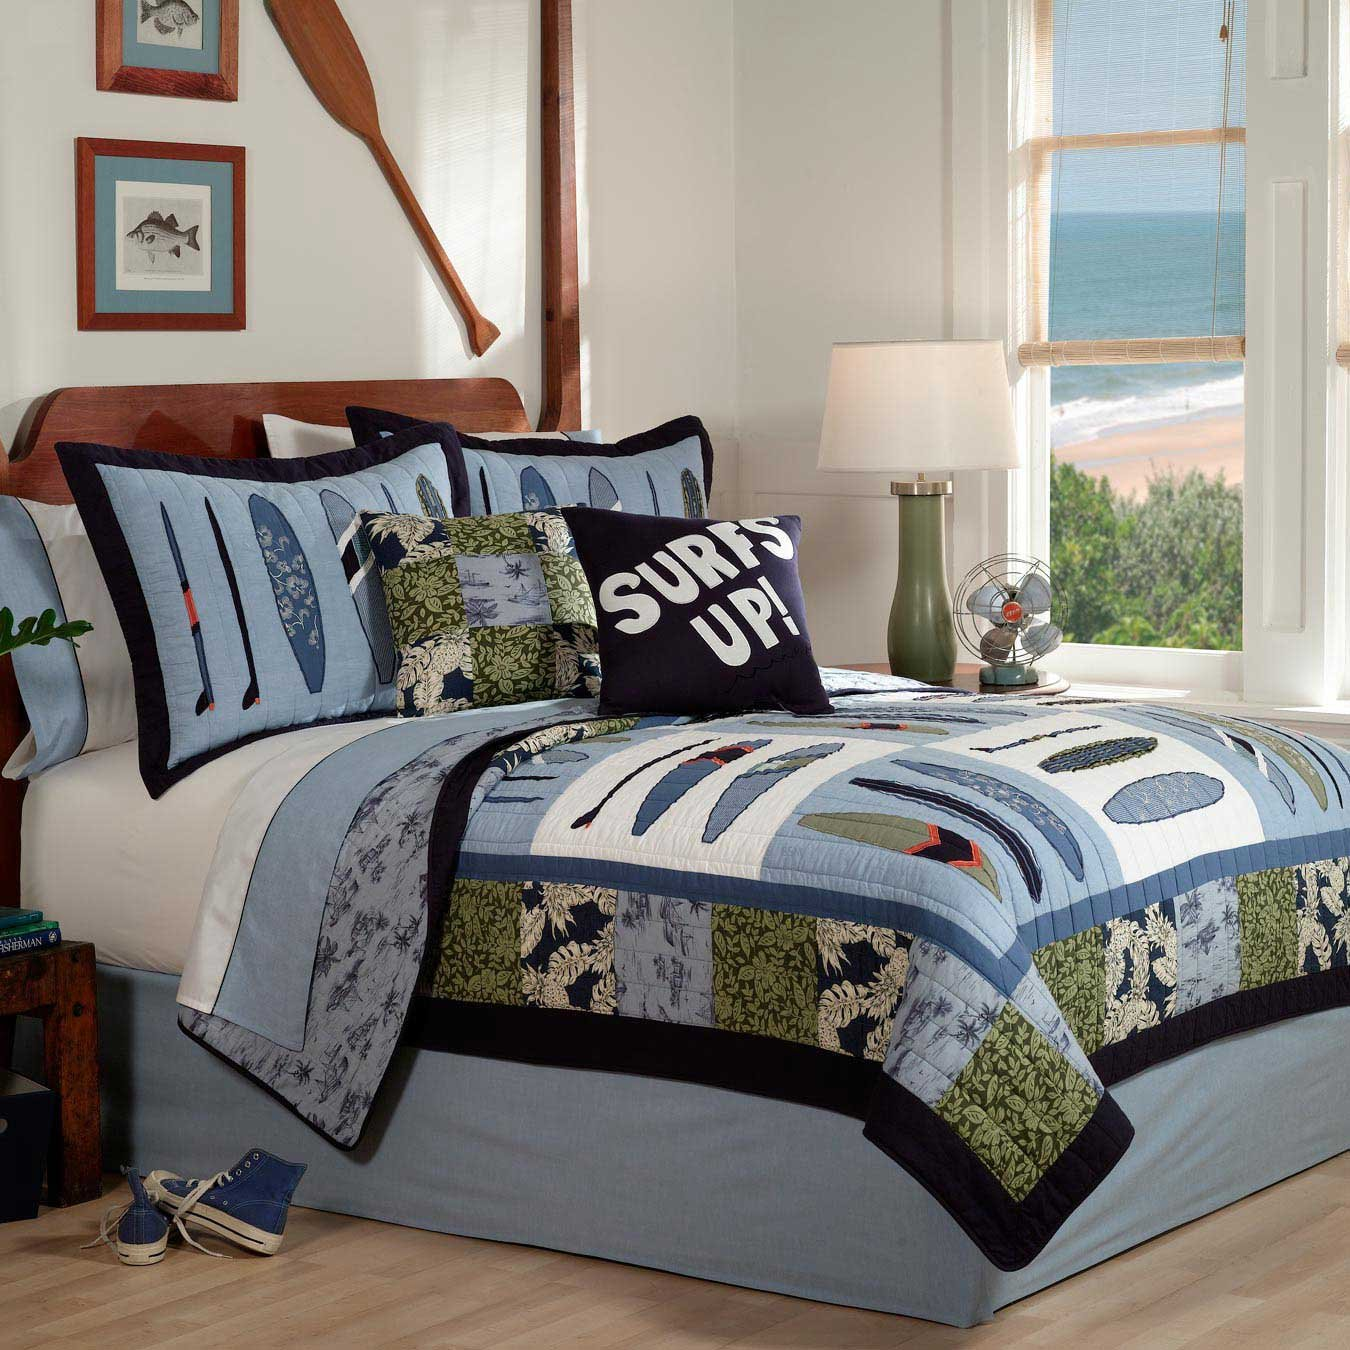 Beach themed bedding for Bedroom quilt ideas